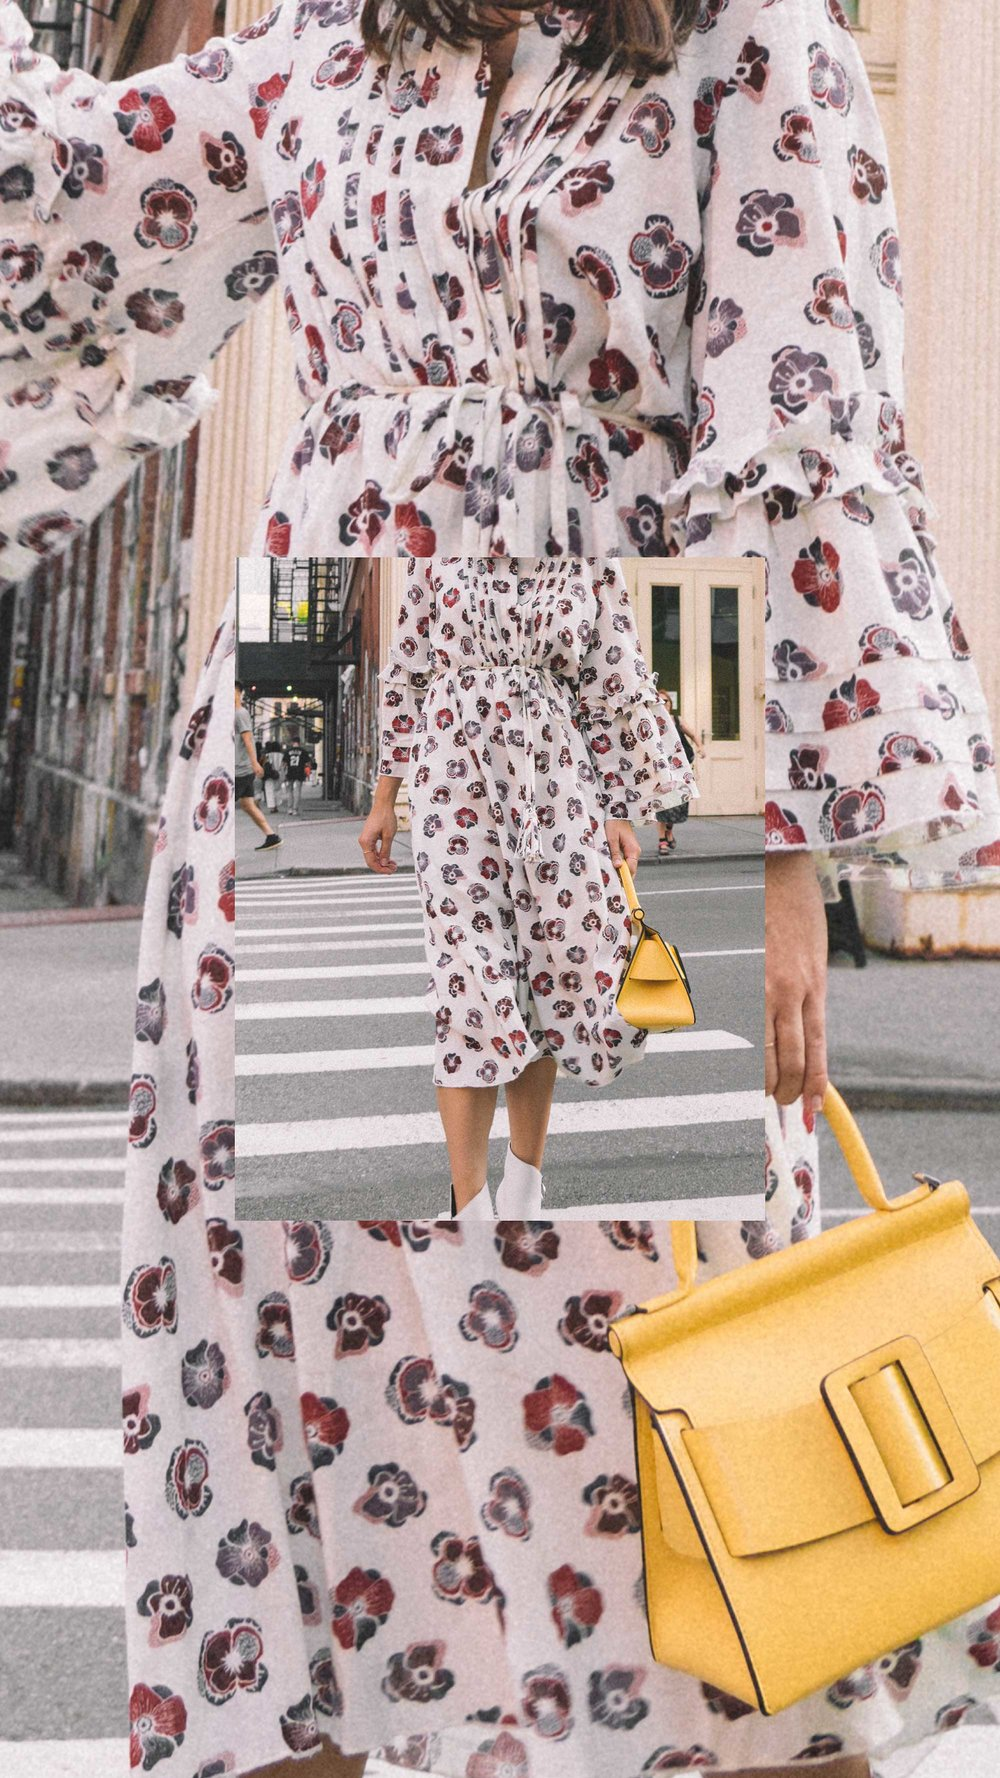 Madewell x Karen Walker Floral Fantasia Ruffled Dress and BOYY Karl 24 Bag soho new york fashion week outfit10.jpg